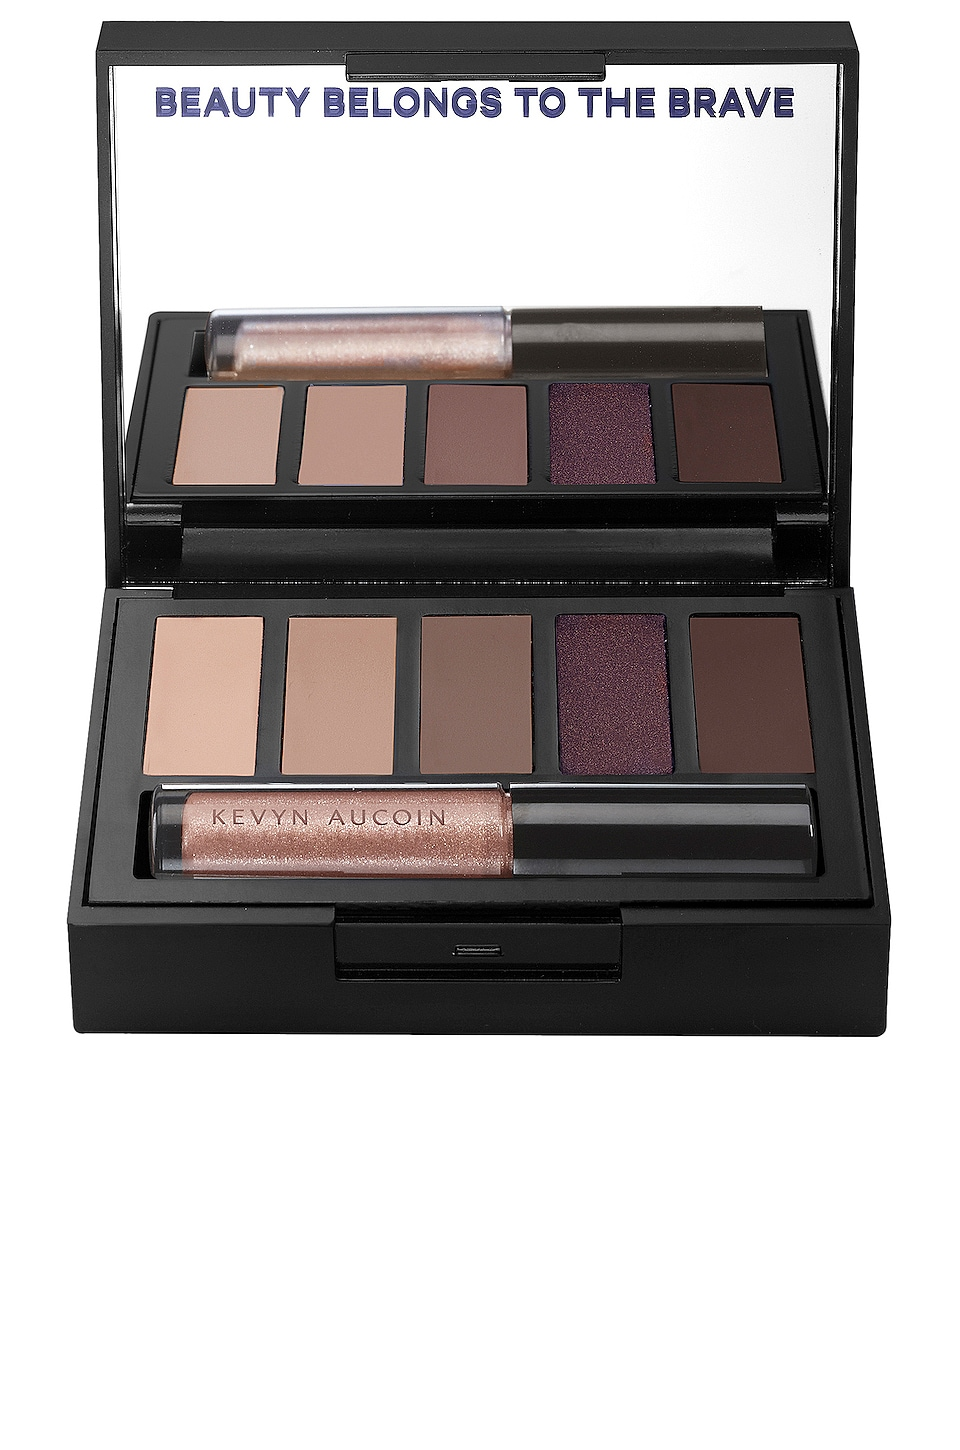 Kevyn Aucoin Emphasize Eye Design Palette in As Seen In